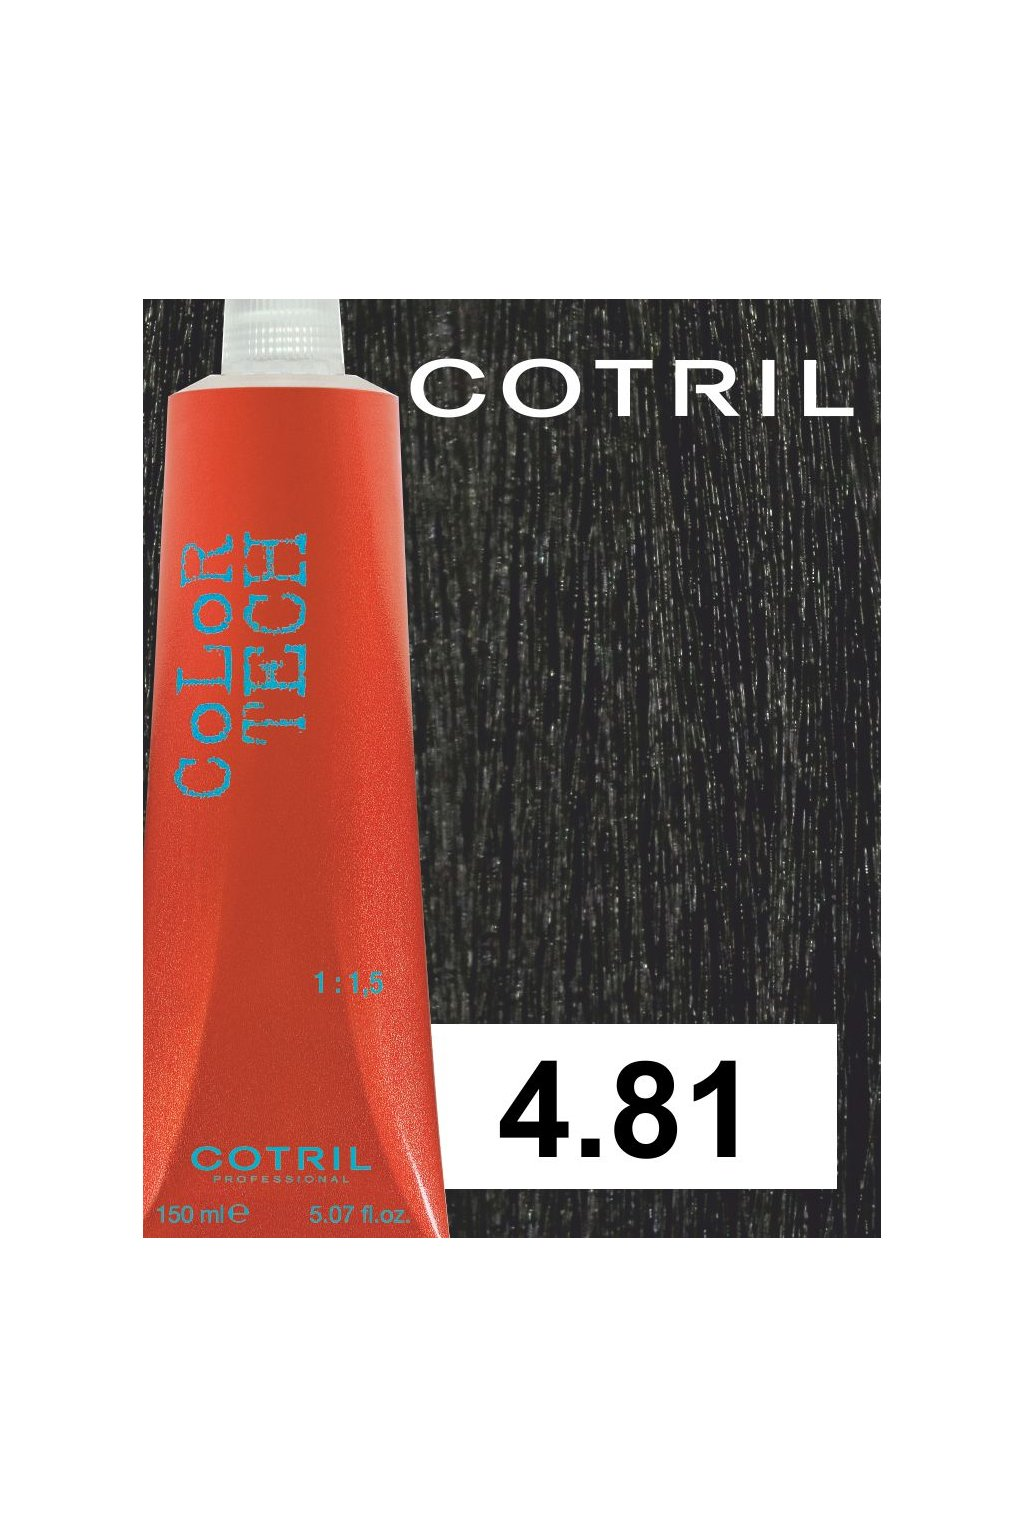 4 81 ct cotril